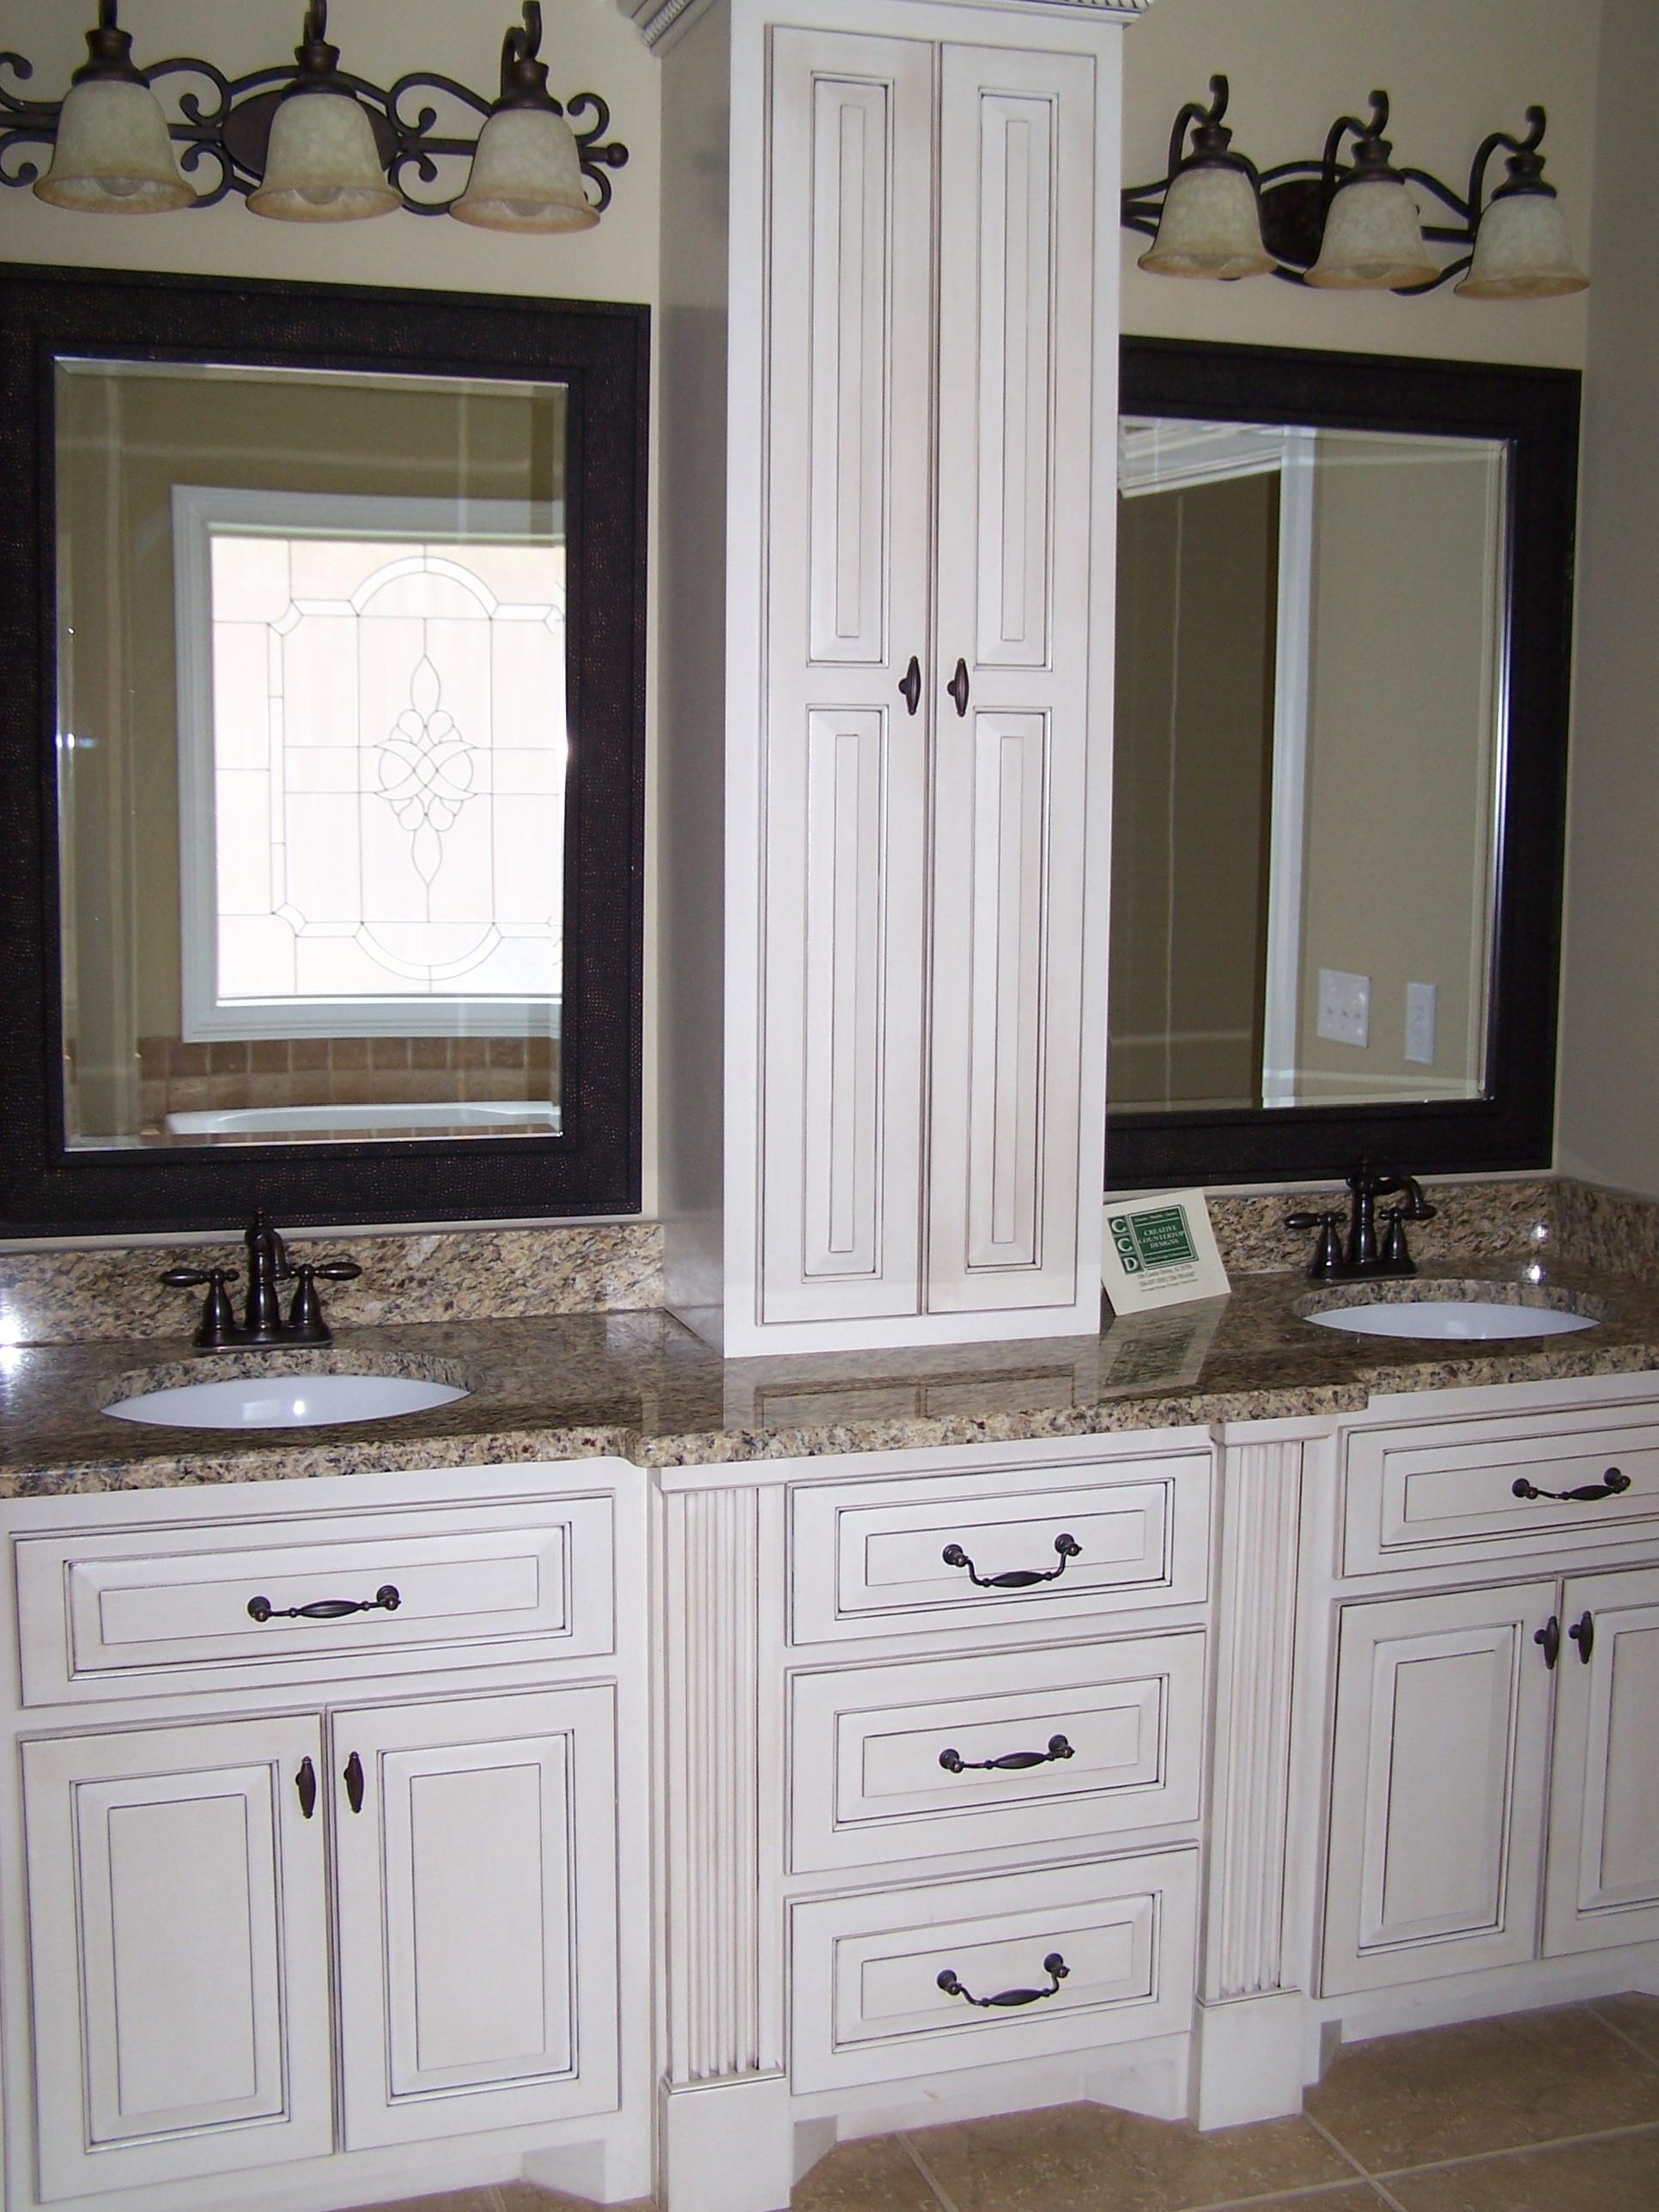 custom bathroom mirror 20 collection of custom bathroom vanity mirrors mirror ideas 12603